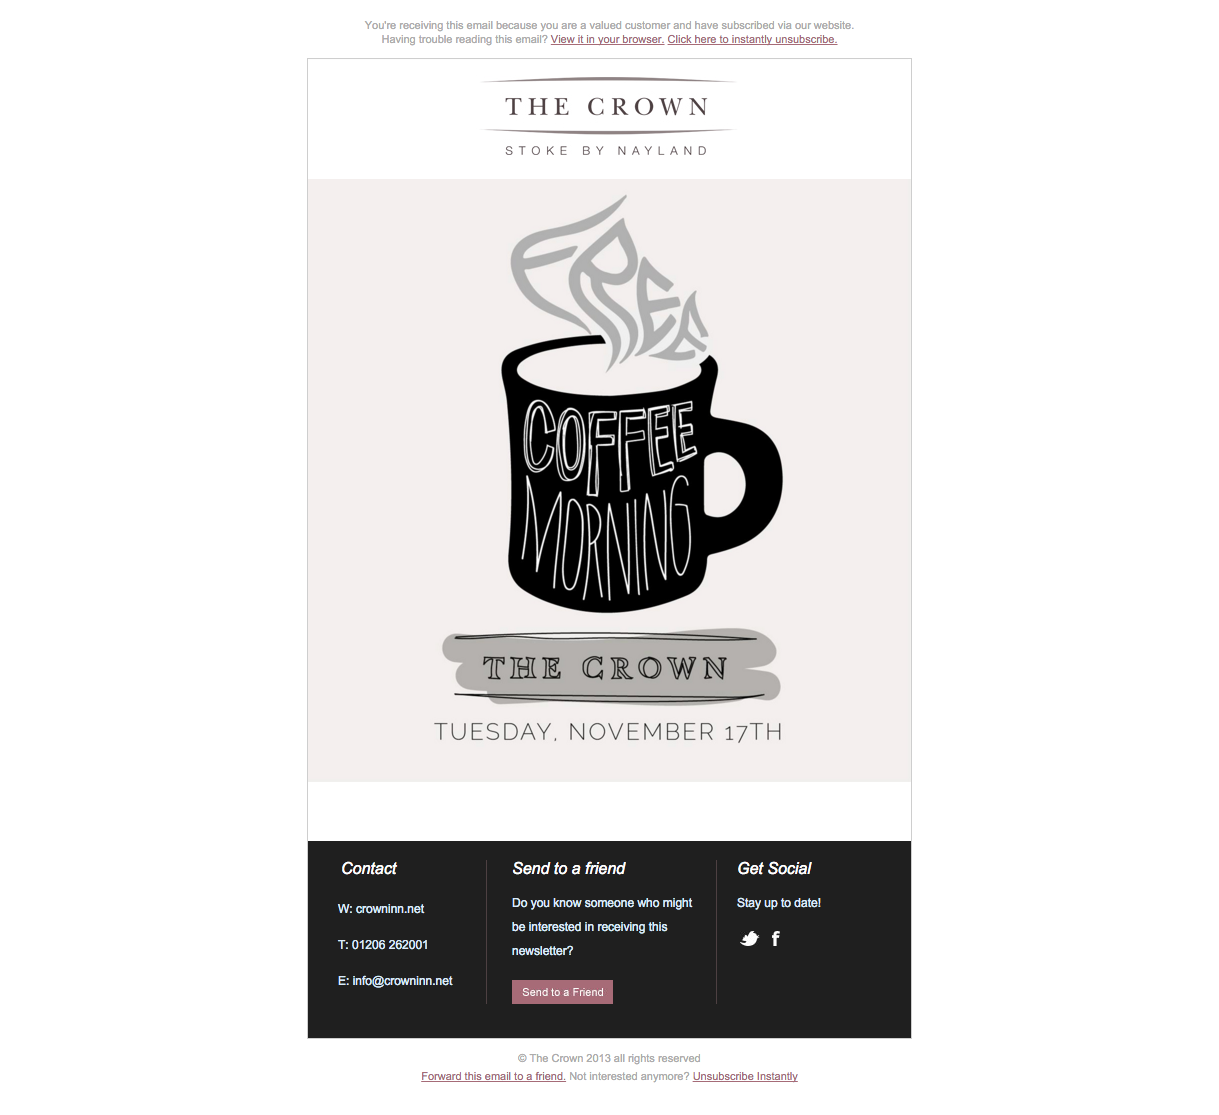 The-Crown-Inn-Free-Coffee-Day-Newsletter